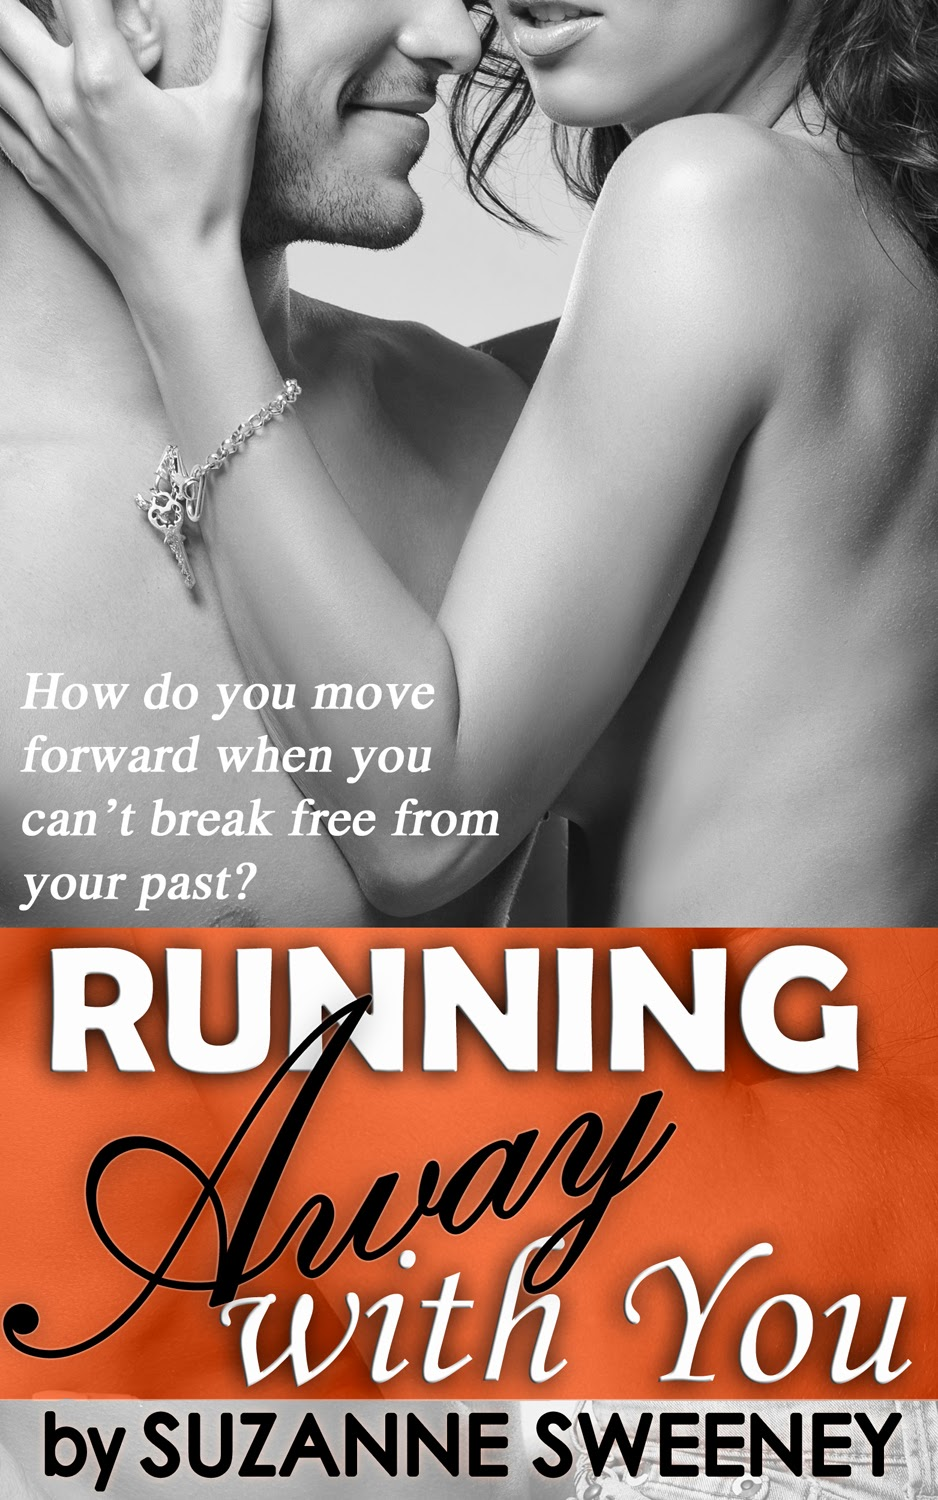 Book excerpt for contemporary romance novel Running Away with You by Suzanne Sweeney